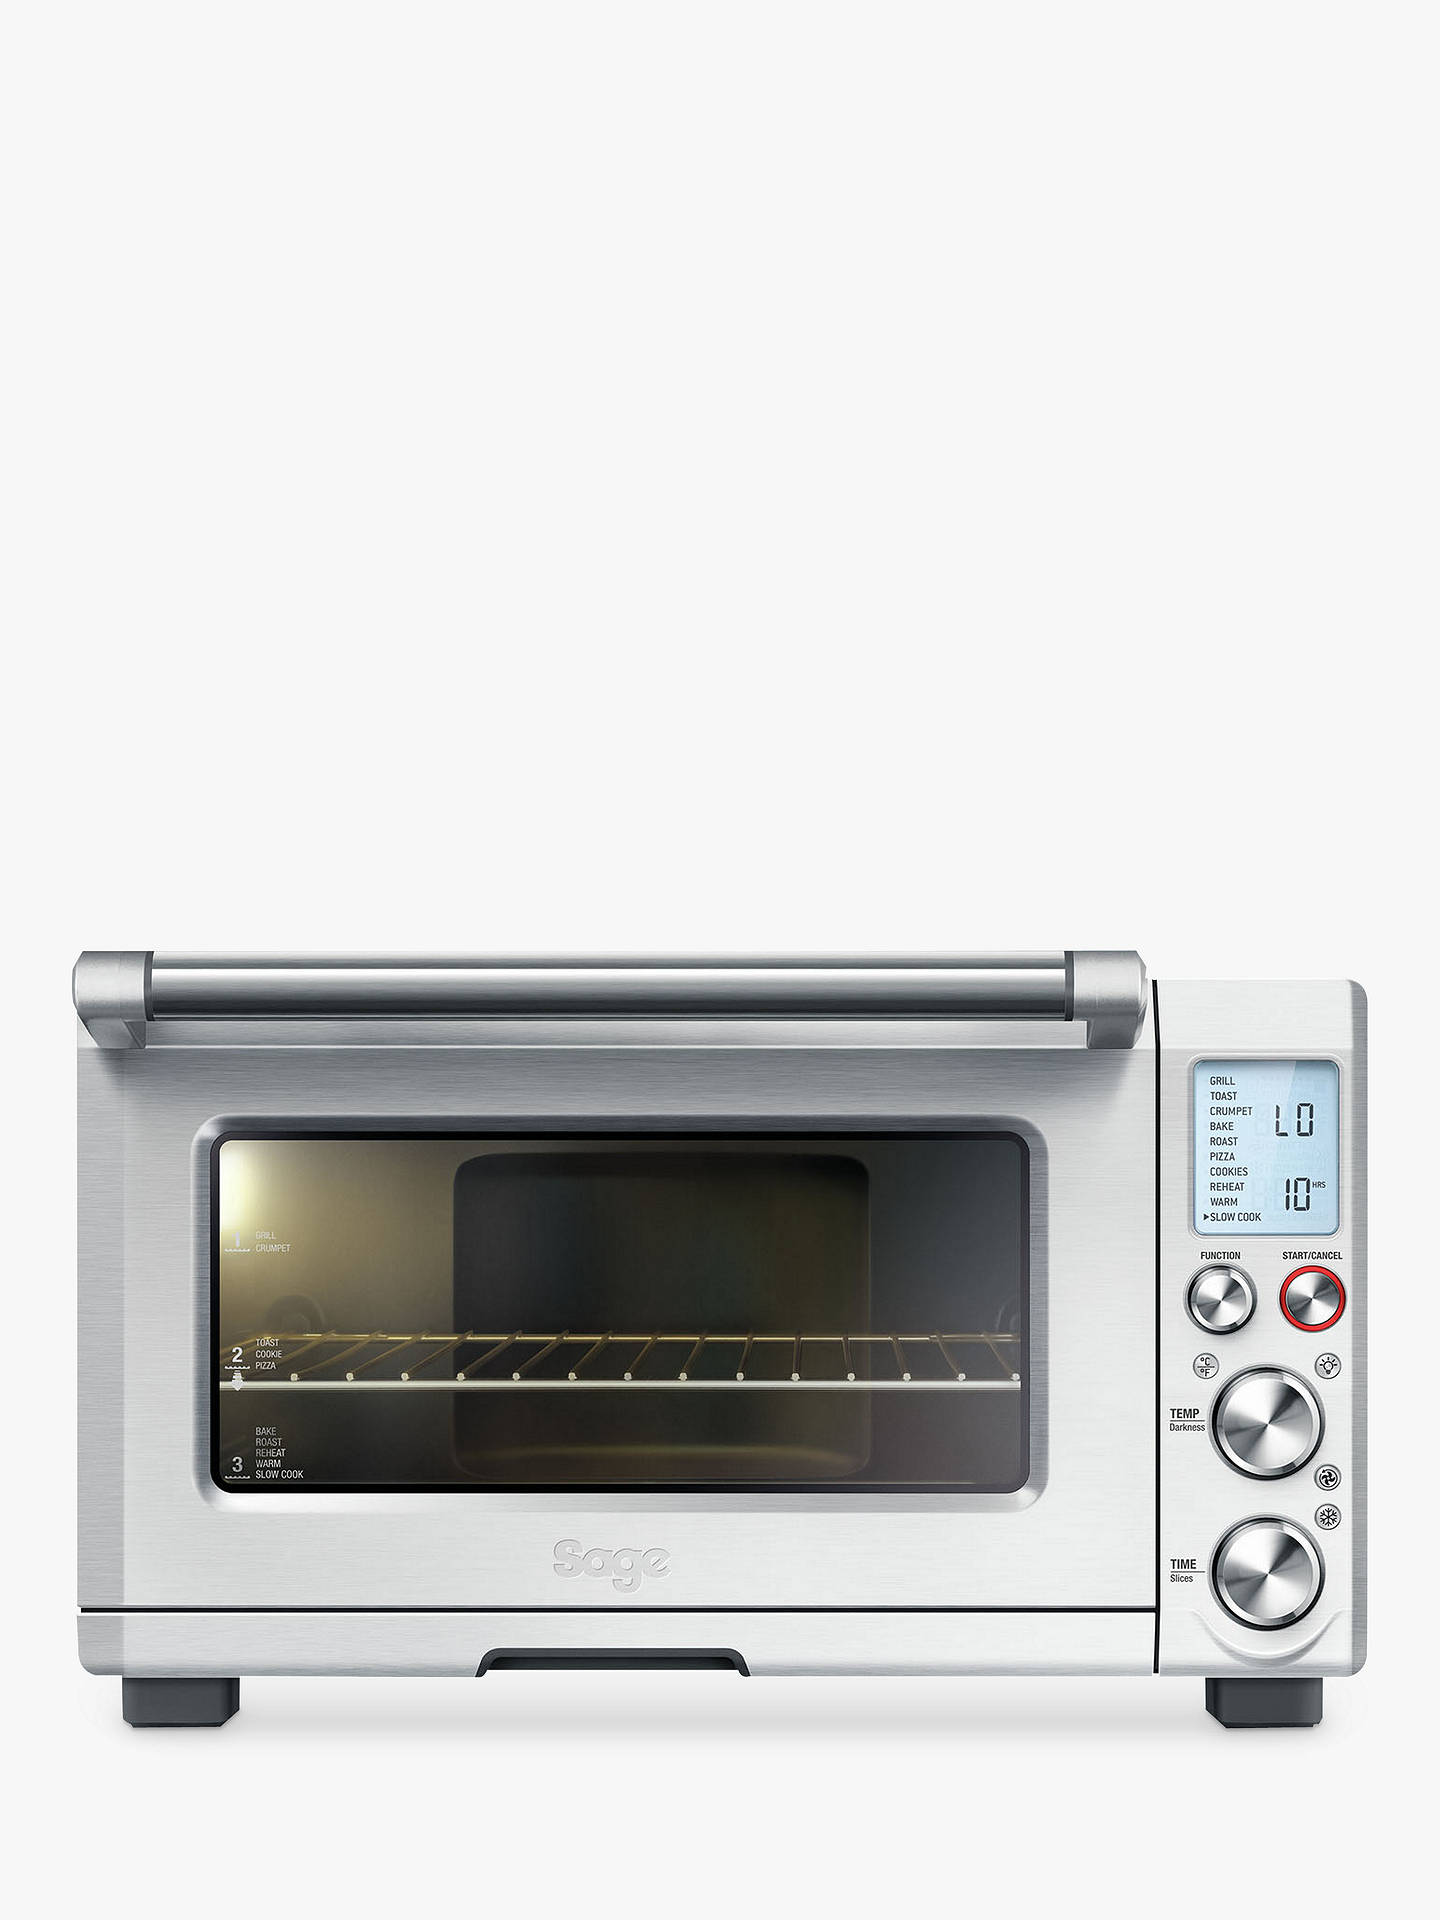 Sage Bov820bss The Smart Oven Pro Silver At John Lewis Partners Cooker Wiring Video Youtube Buysage Online